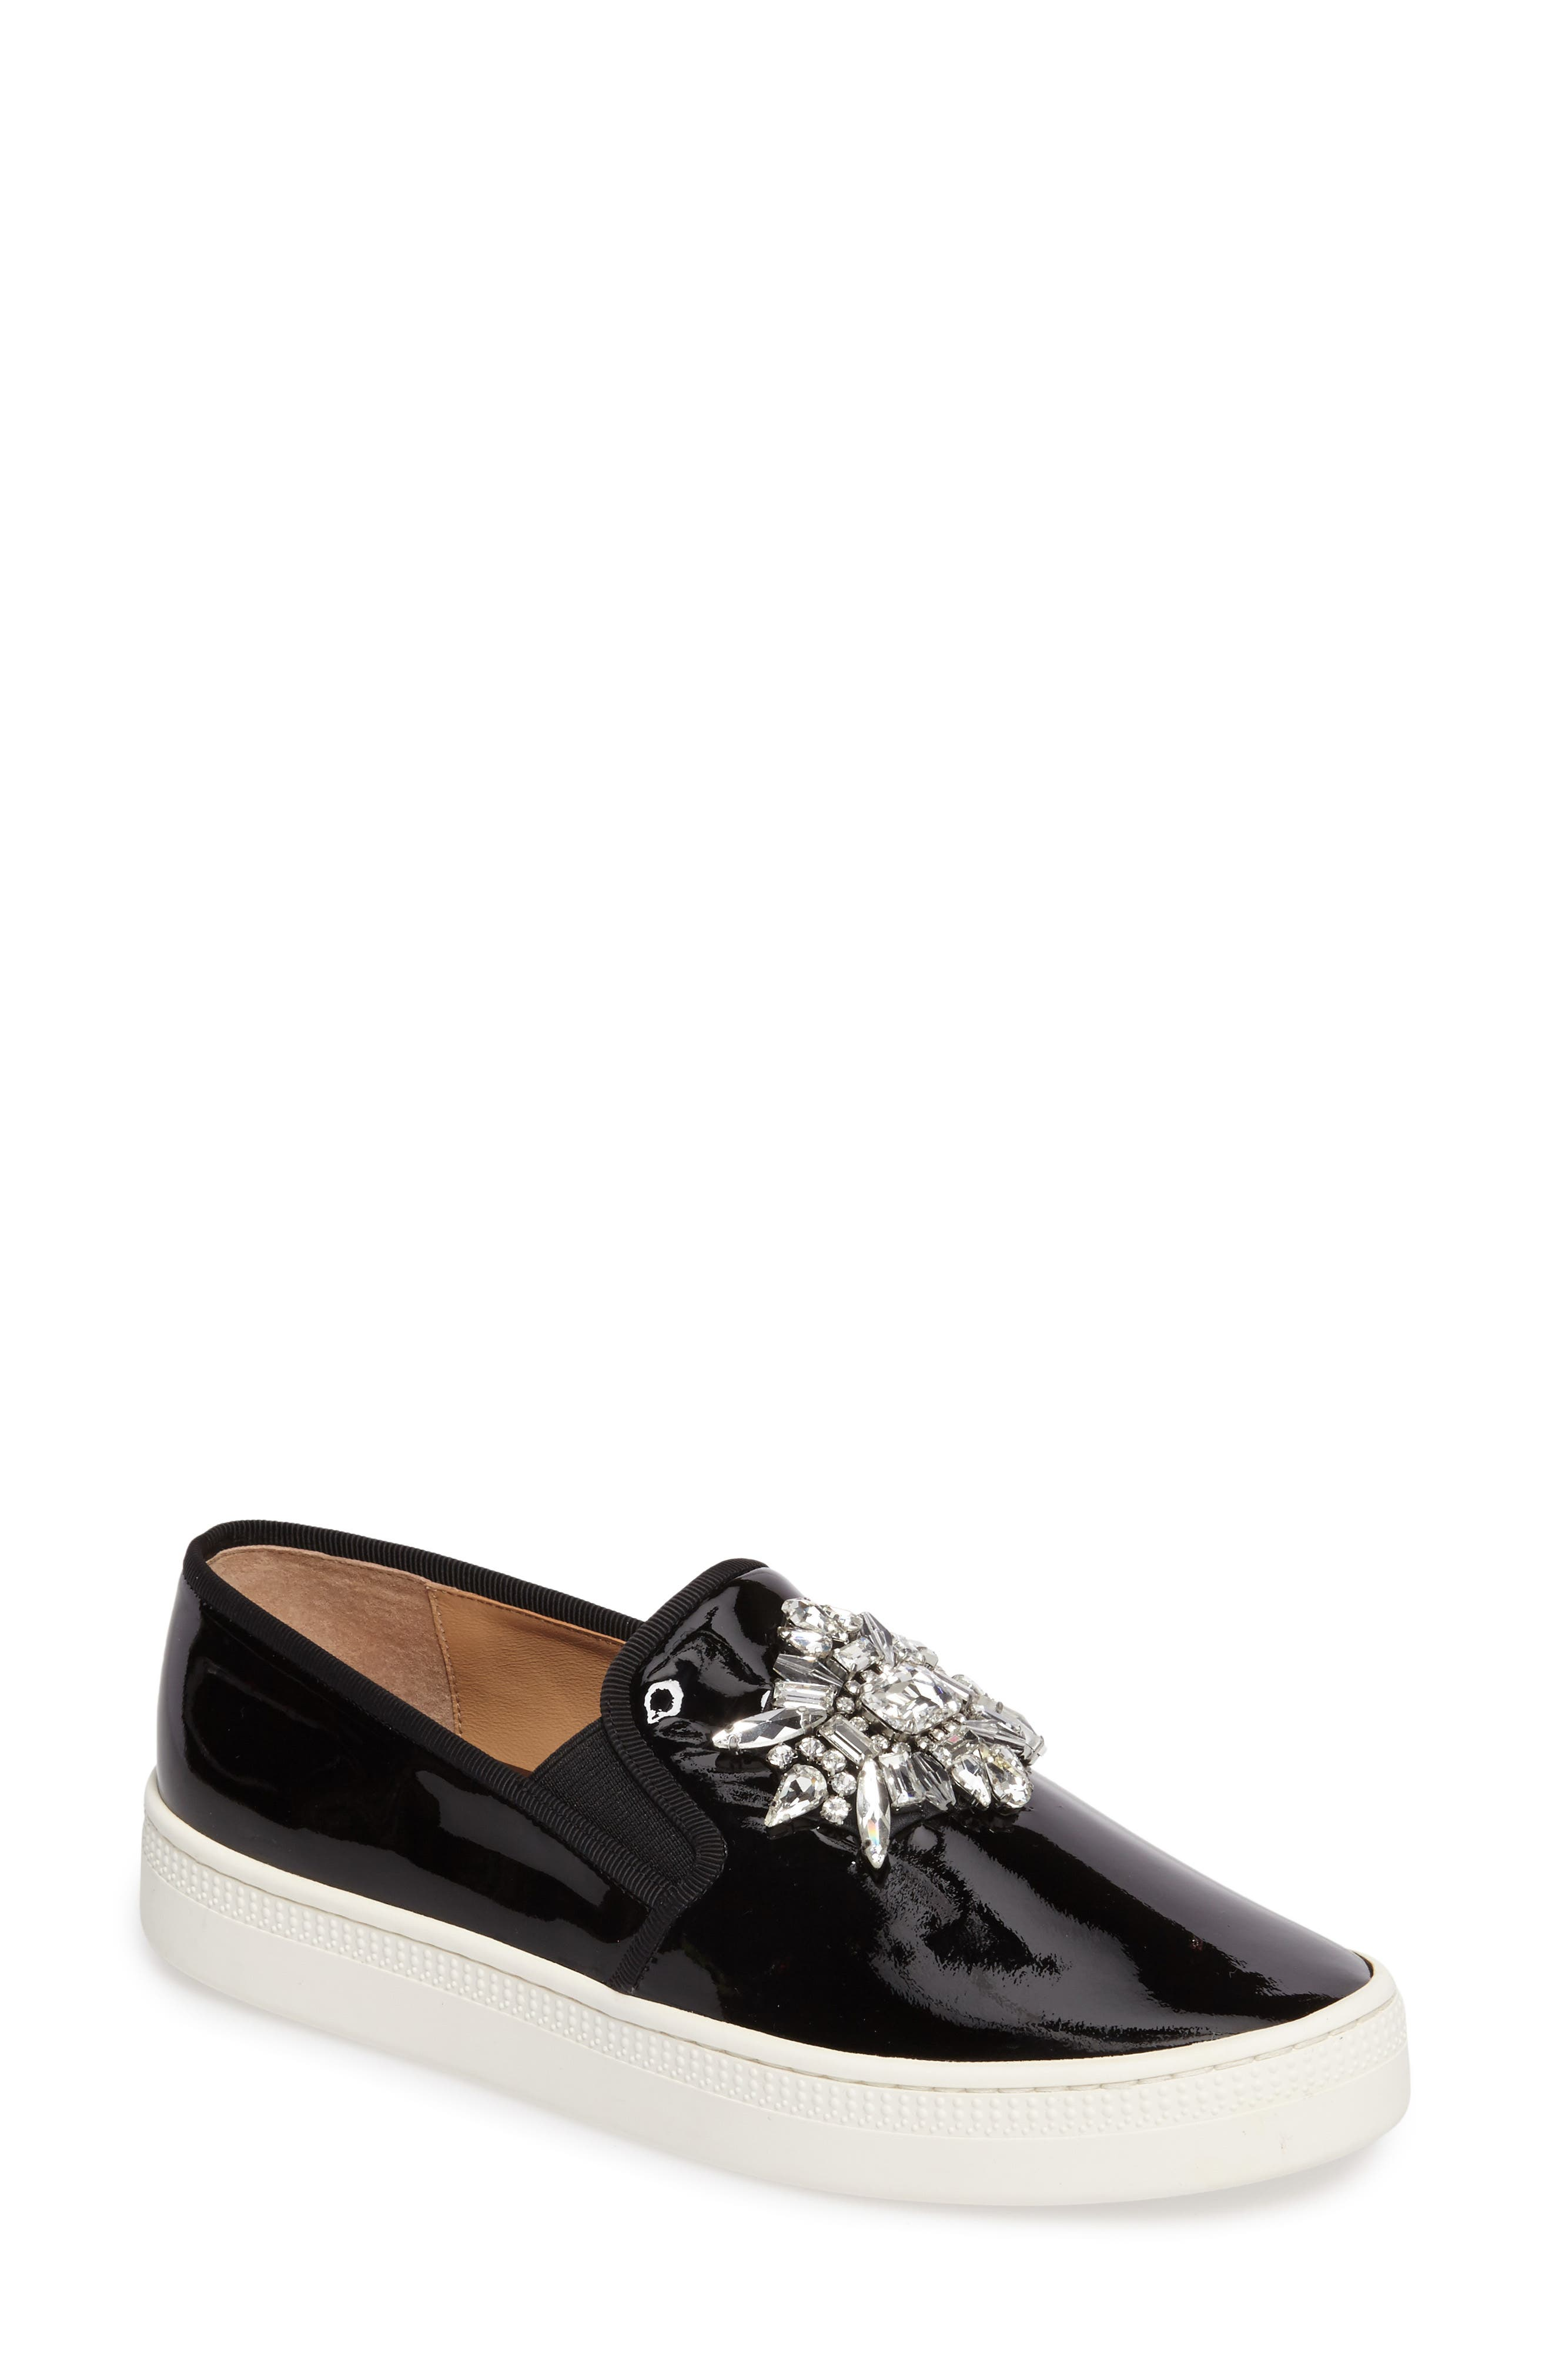 Badgley Mischka Barre Crystal Embellished Slip-On Sneaker,                         Main,                         color, 011